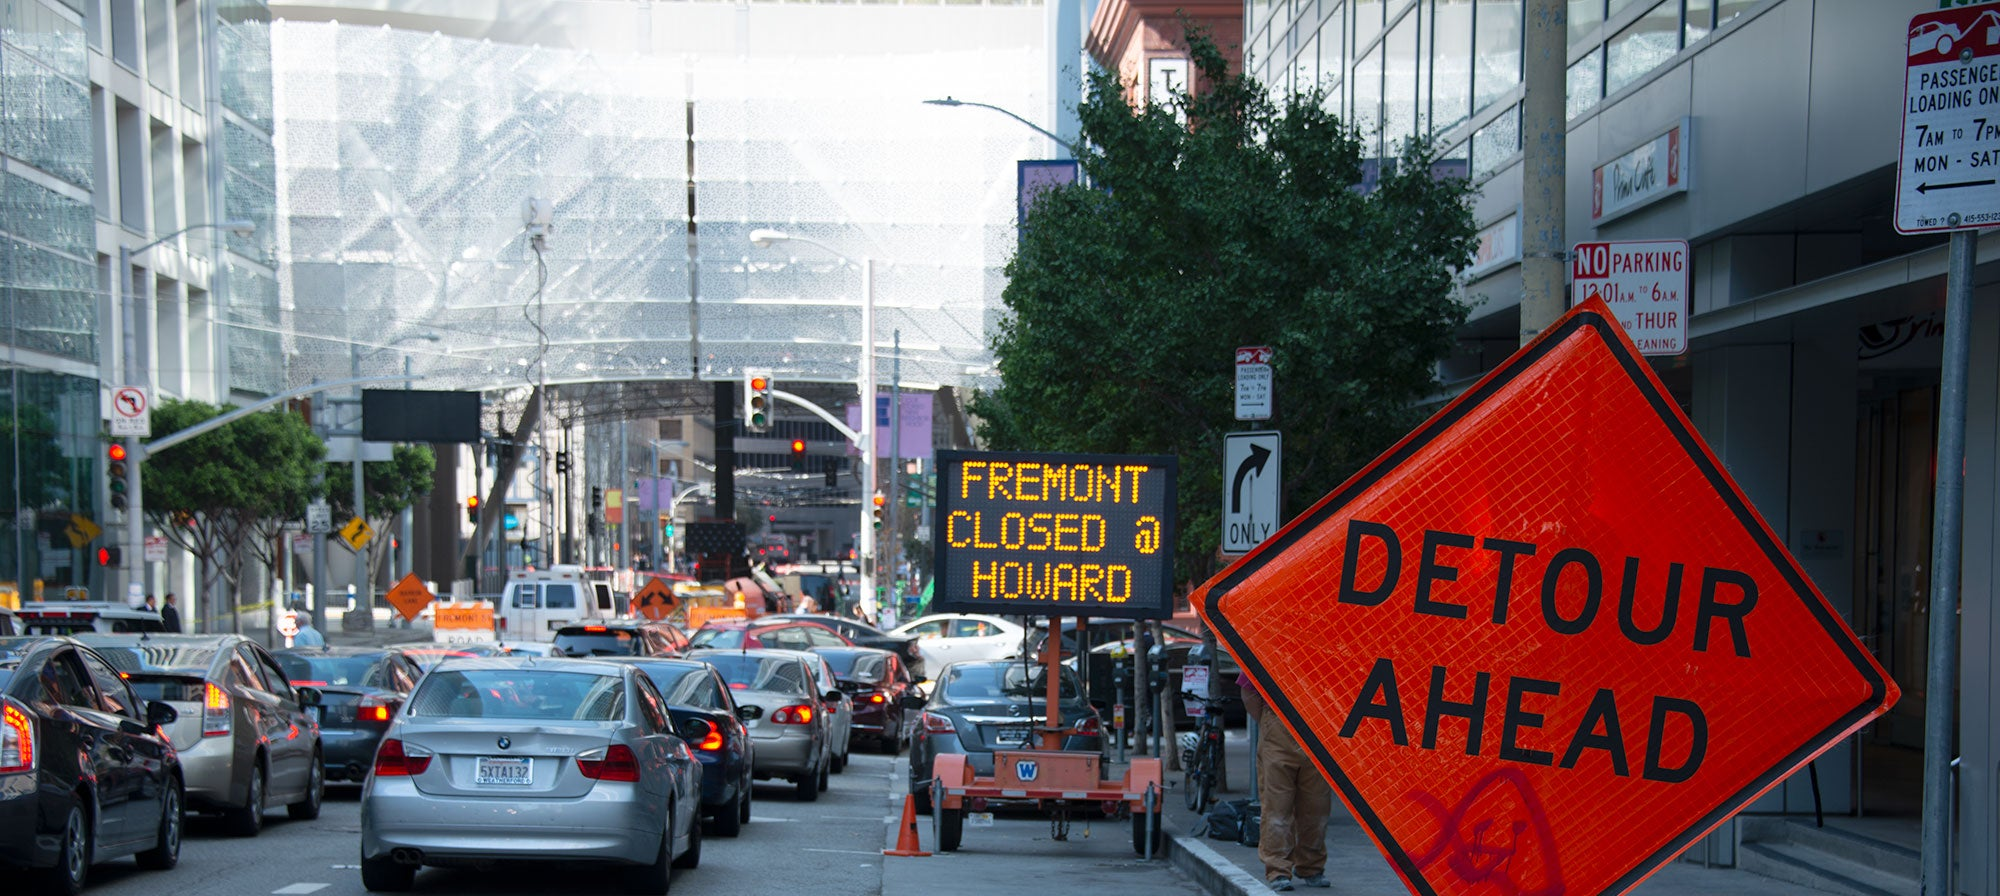 Traffic is being detoured around Fremont Street, which runs underneath the section of the Transit Center affected by the cracked beams. Visible in the distance are temporary posts reinforcing the affected area.